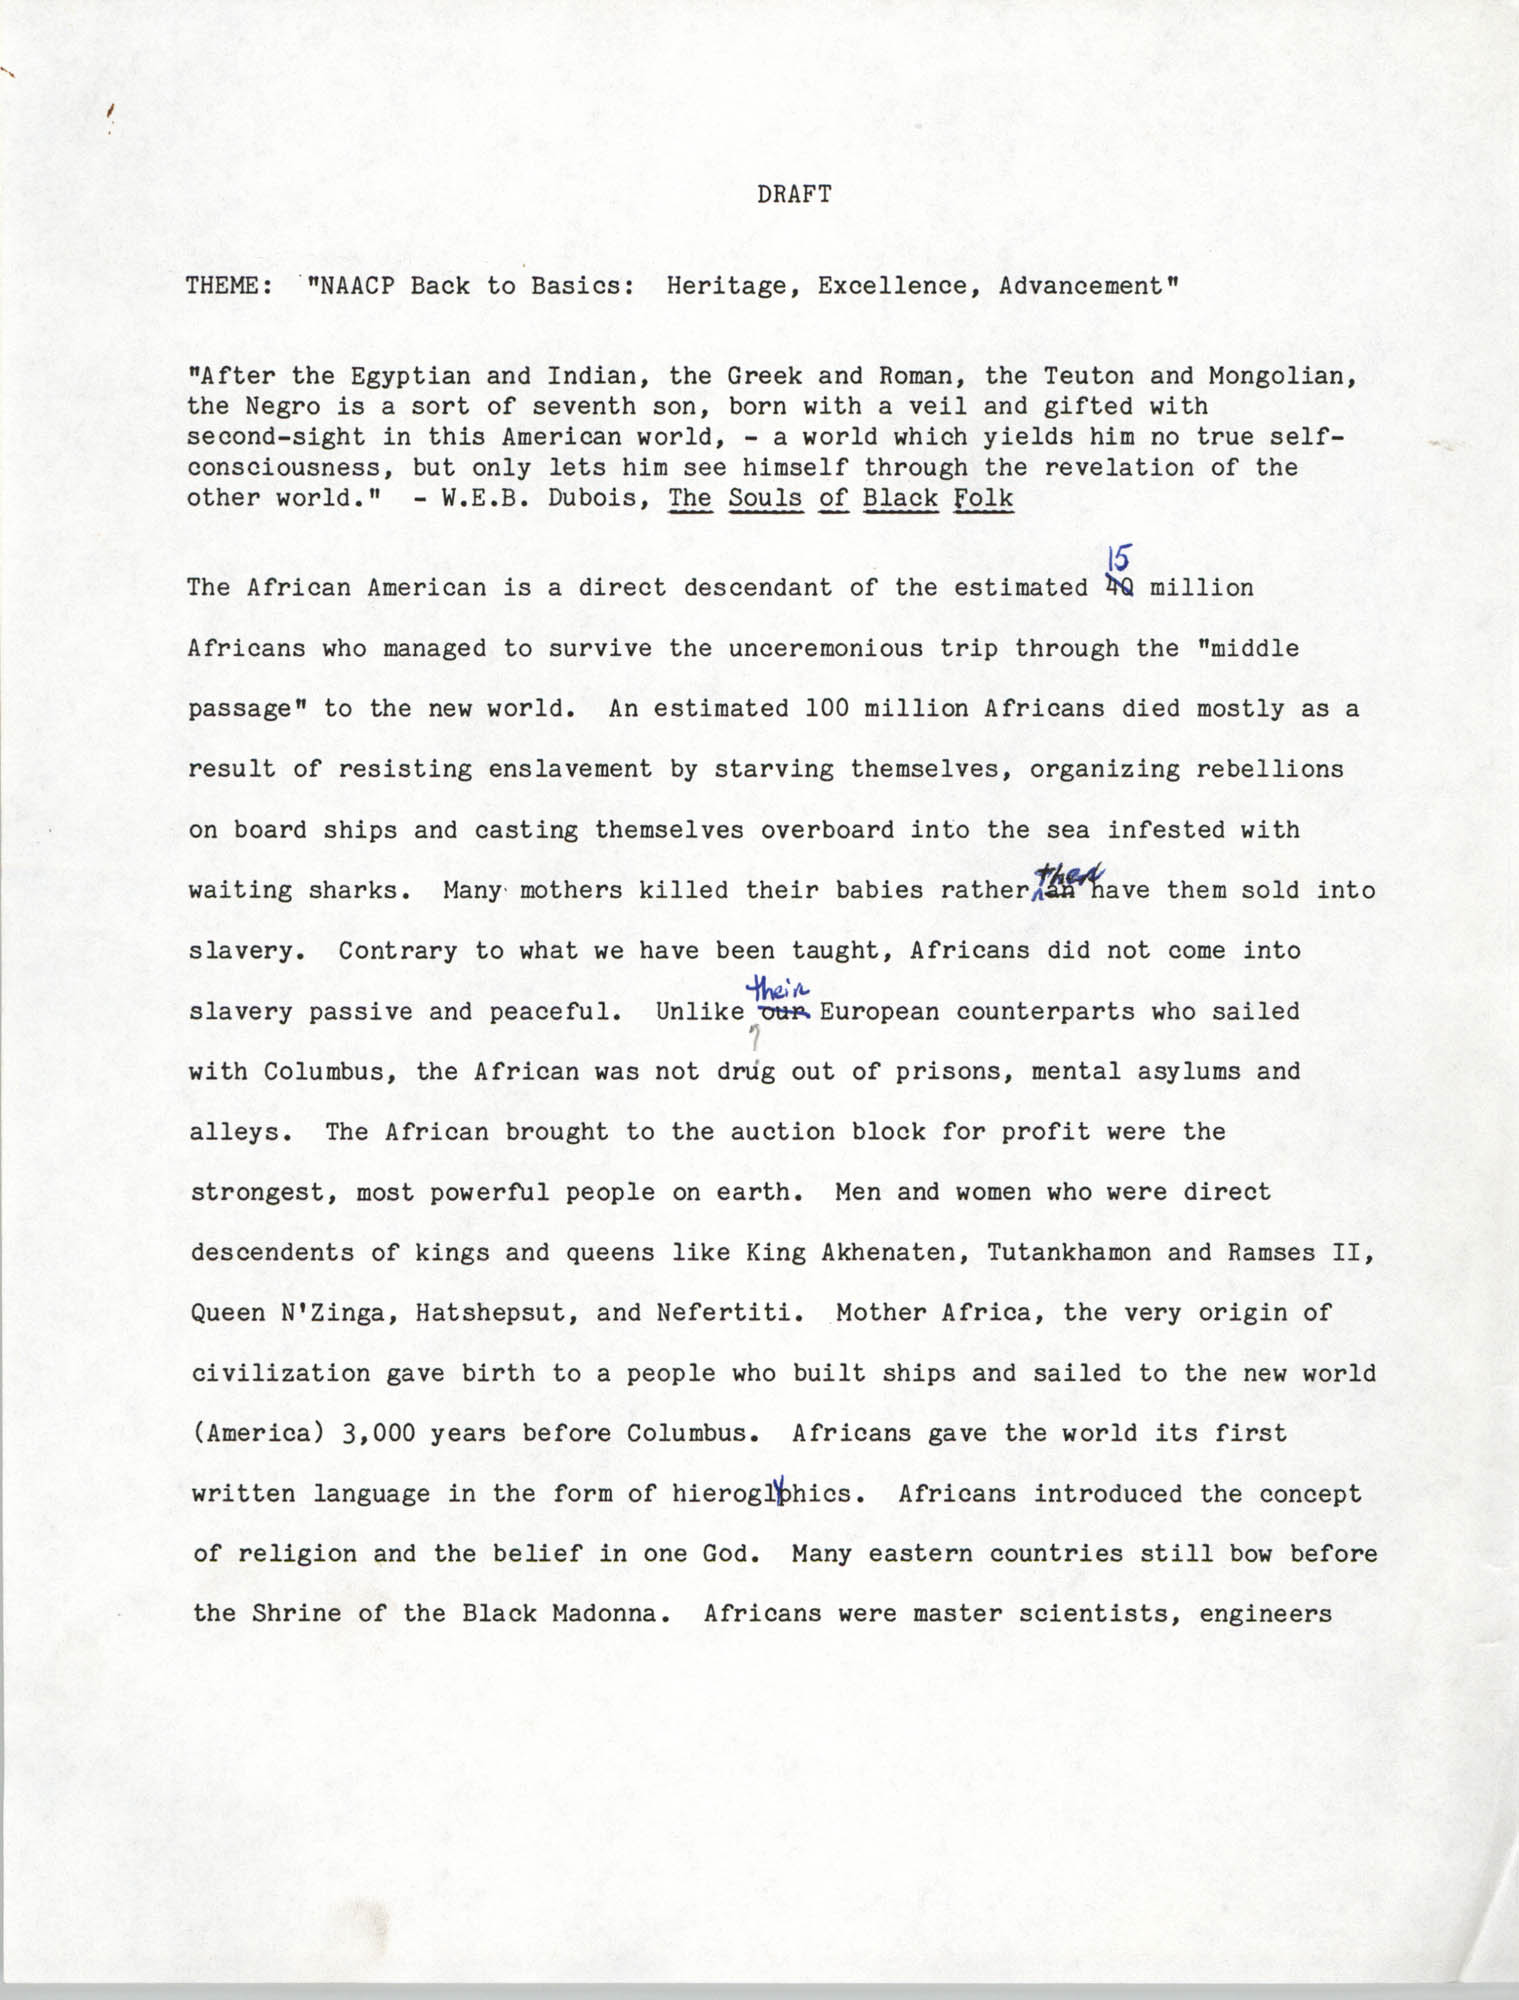 Draft, Speech, Roy I. Jones